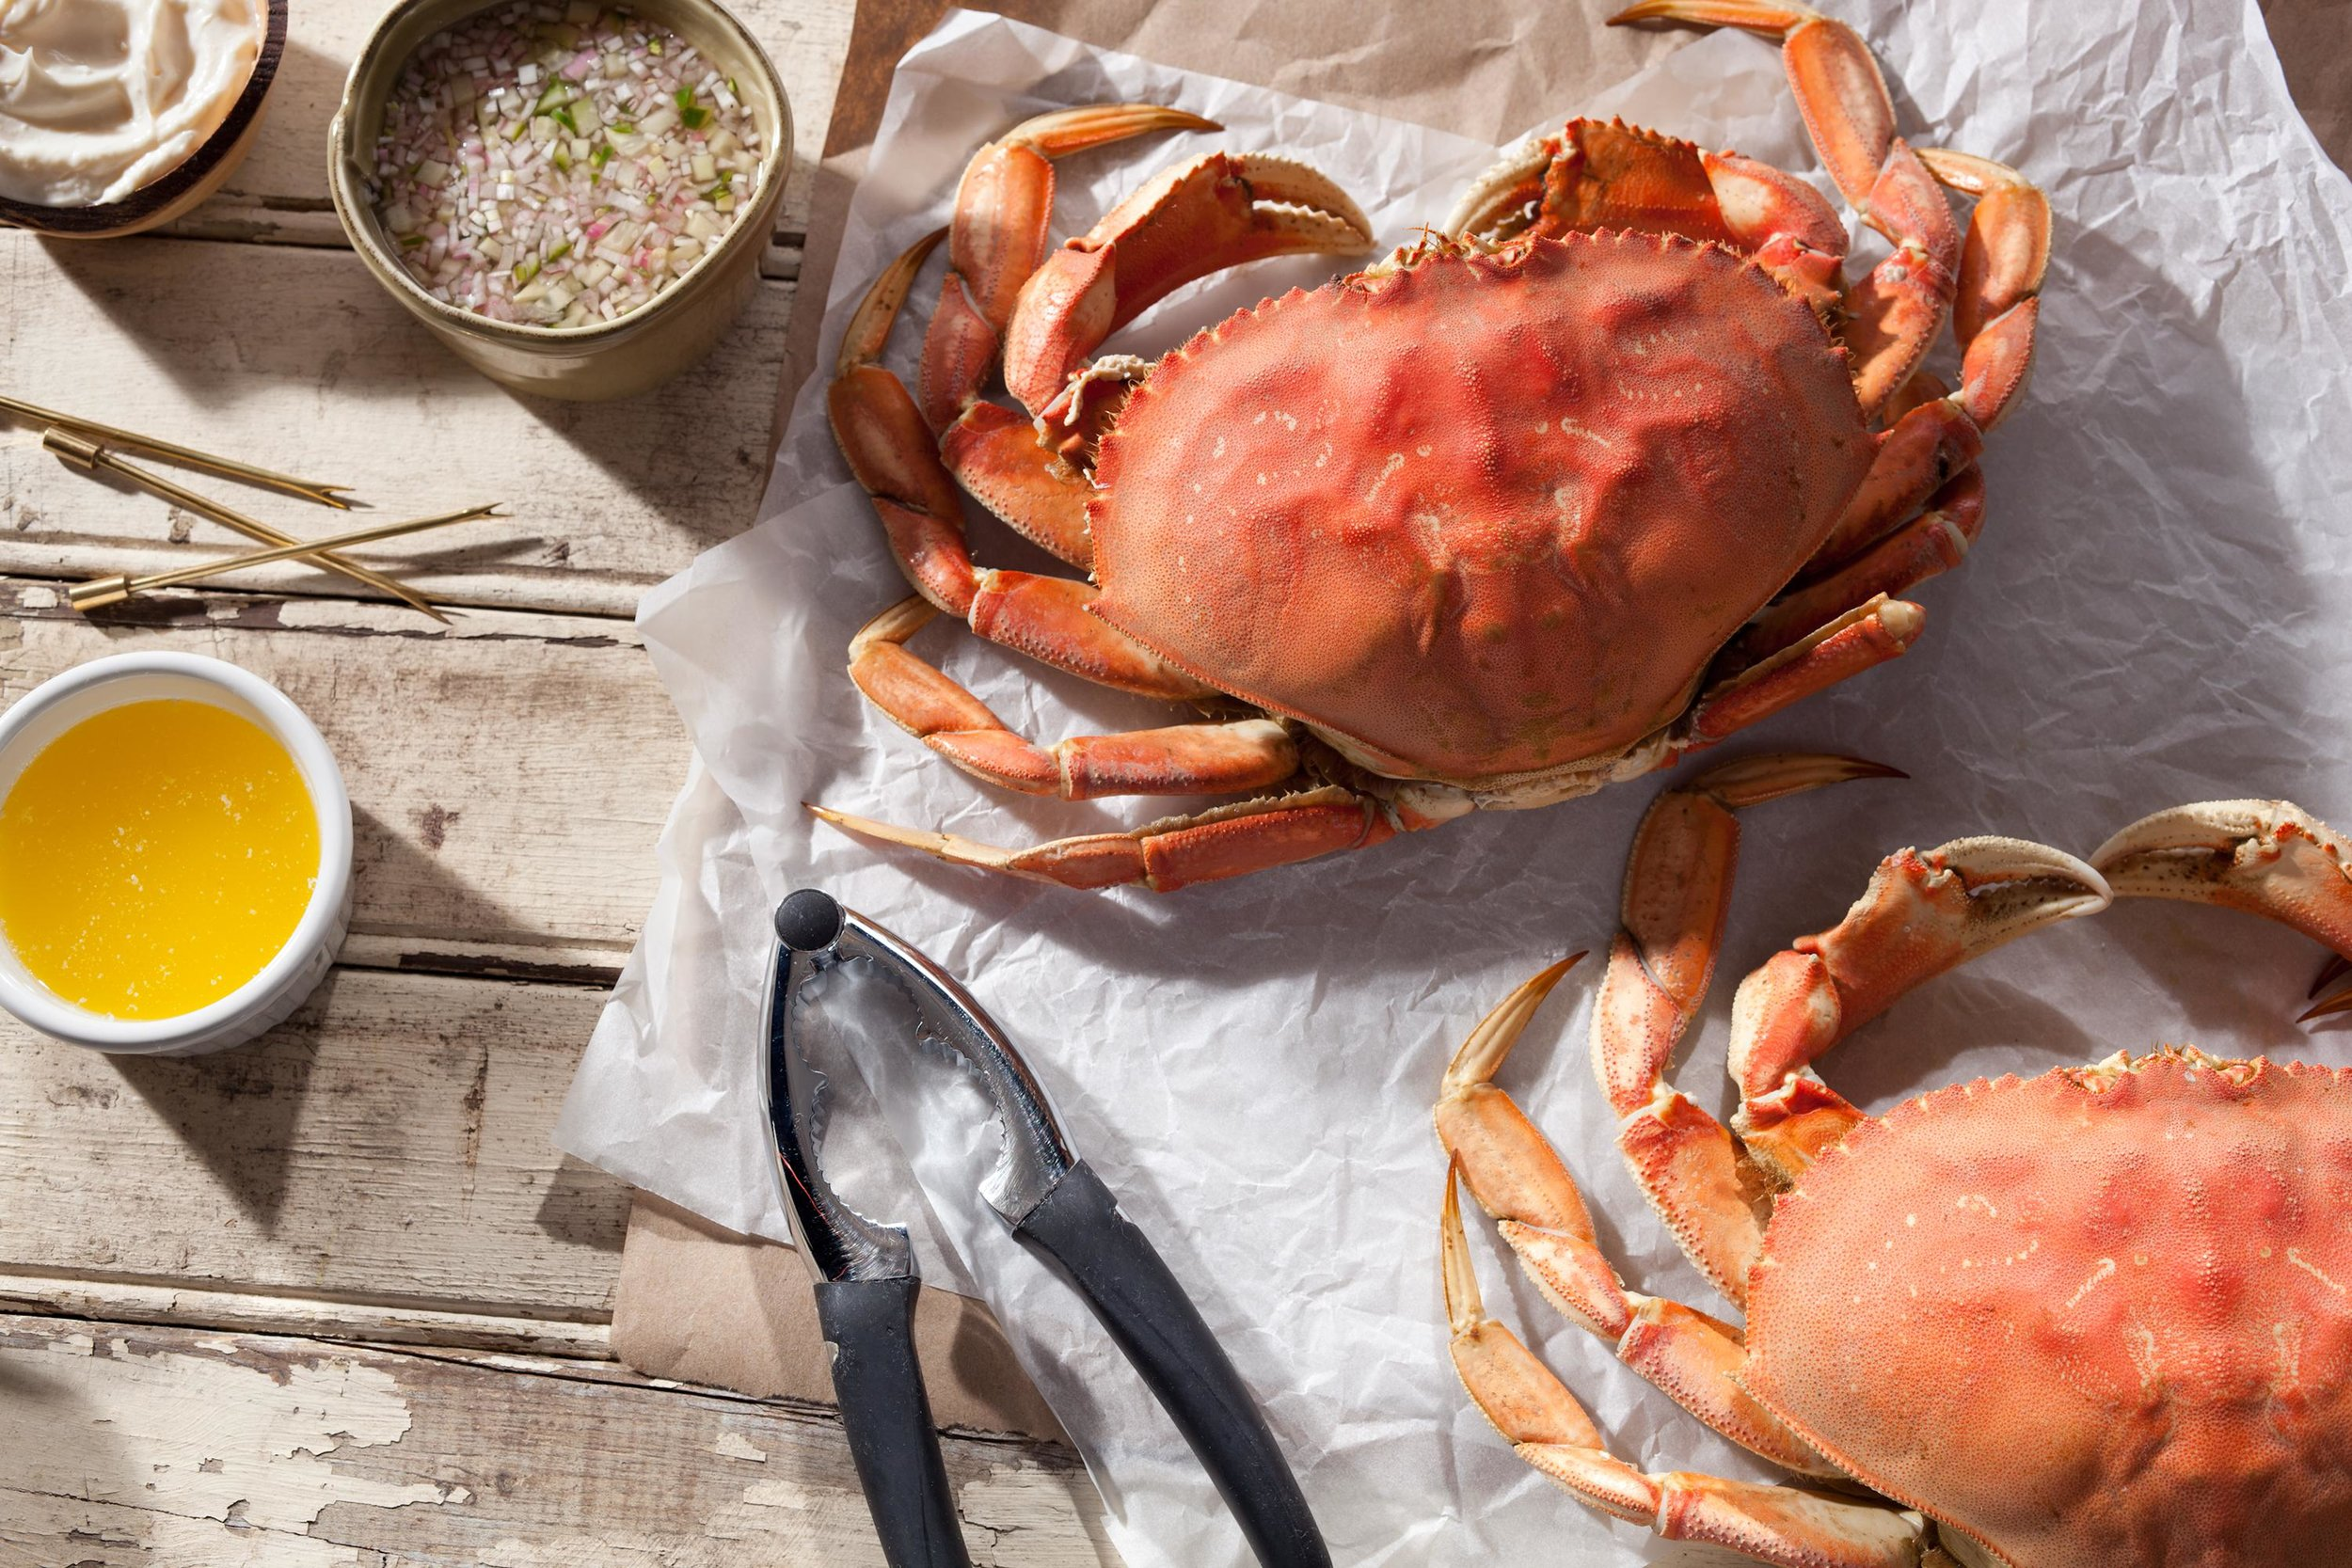 30258_RecipeImage_dungeness_crab2.jpg